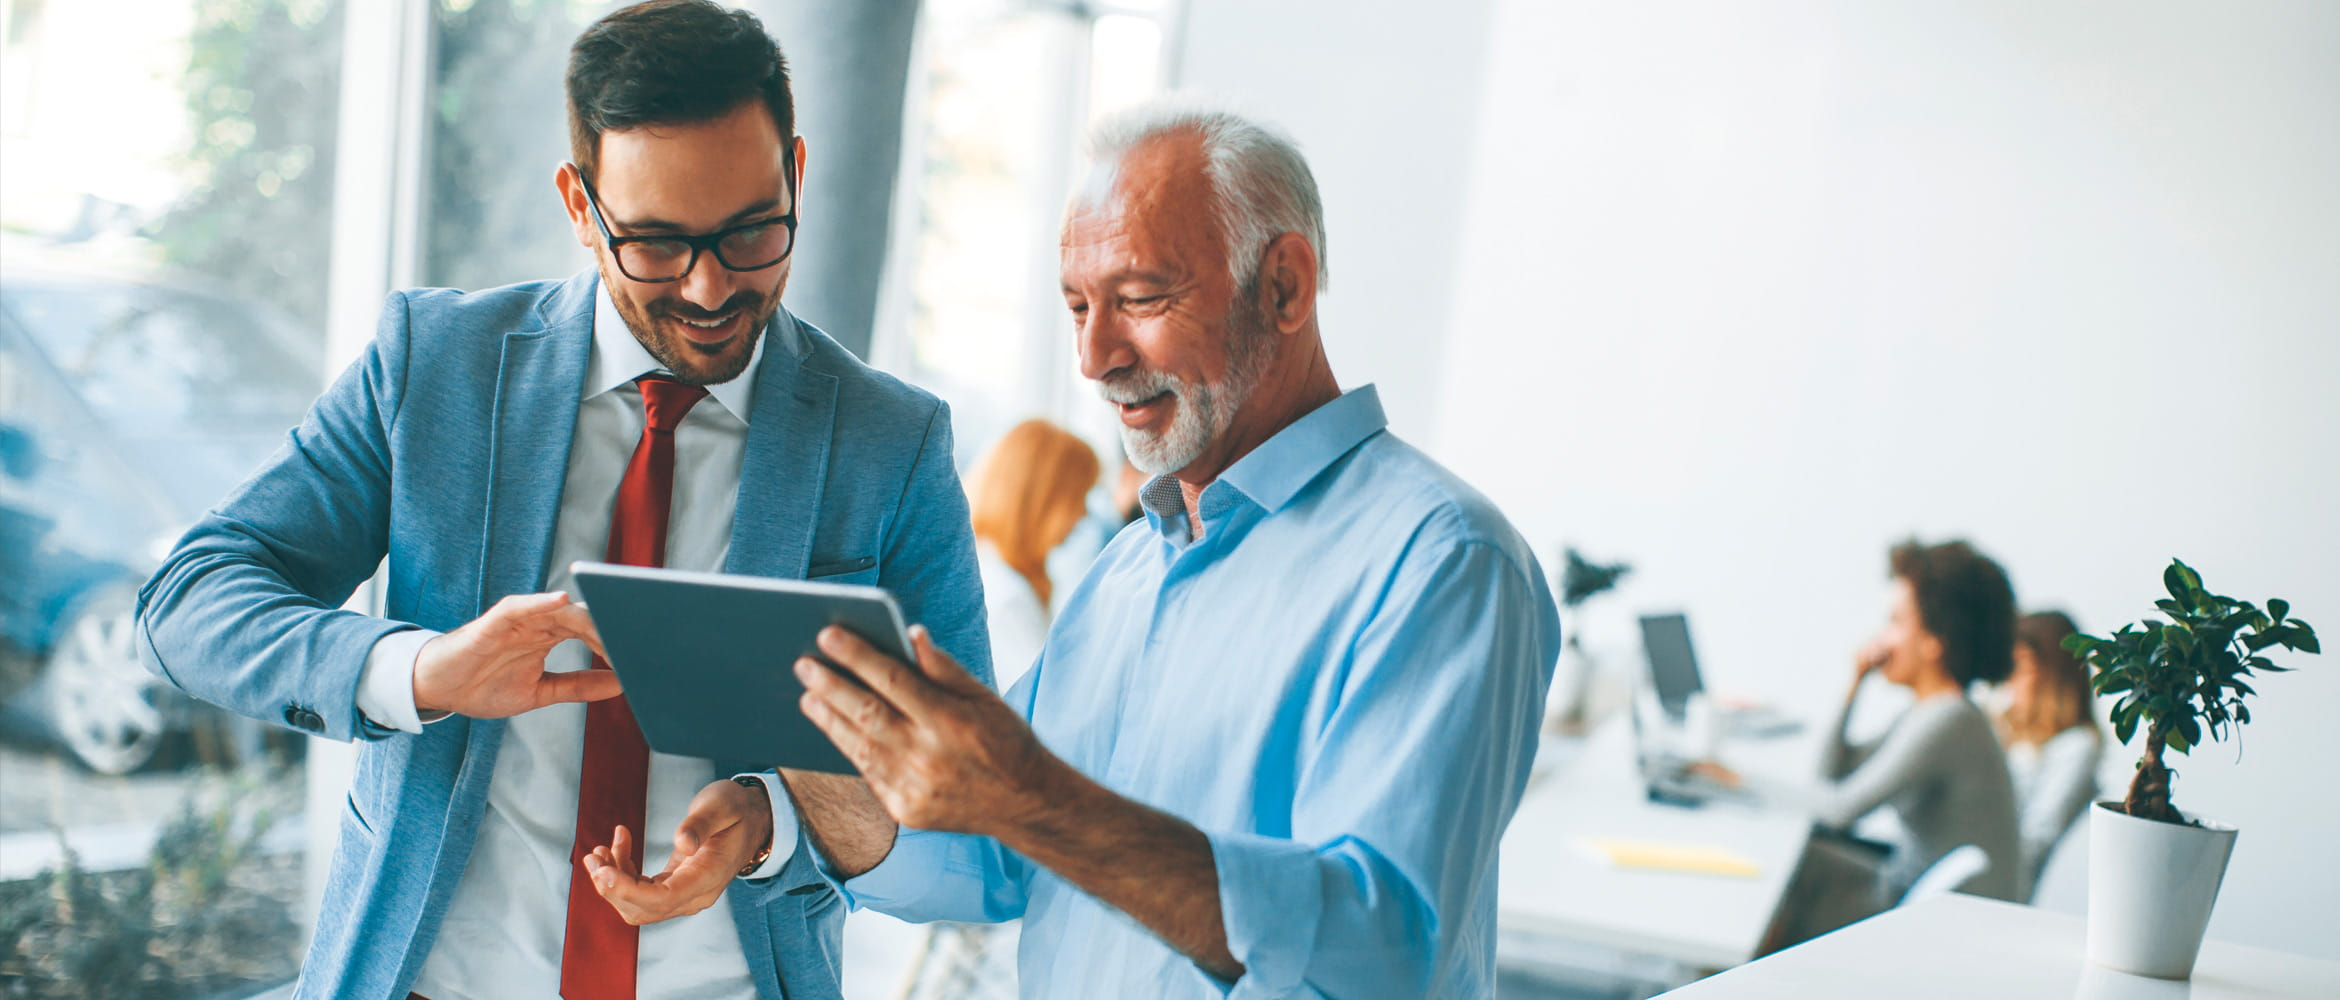 A young man in a bright suit and an older male co-worker in a more relaxed shirt discuss a business project on a tablet during a stand-up meeting in the more diverse and collaborative workplace of the future